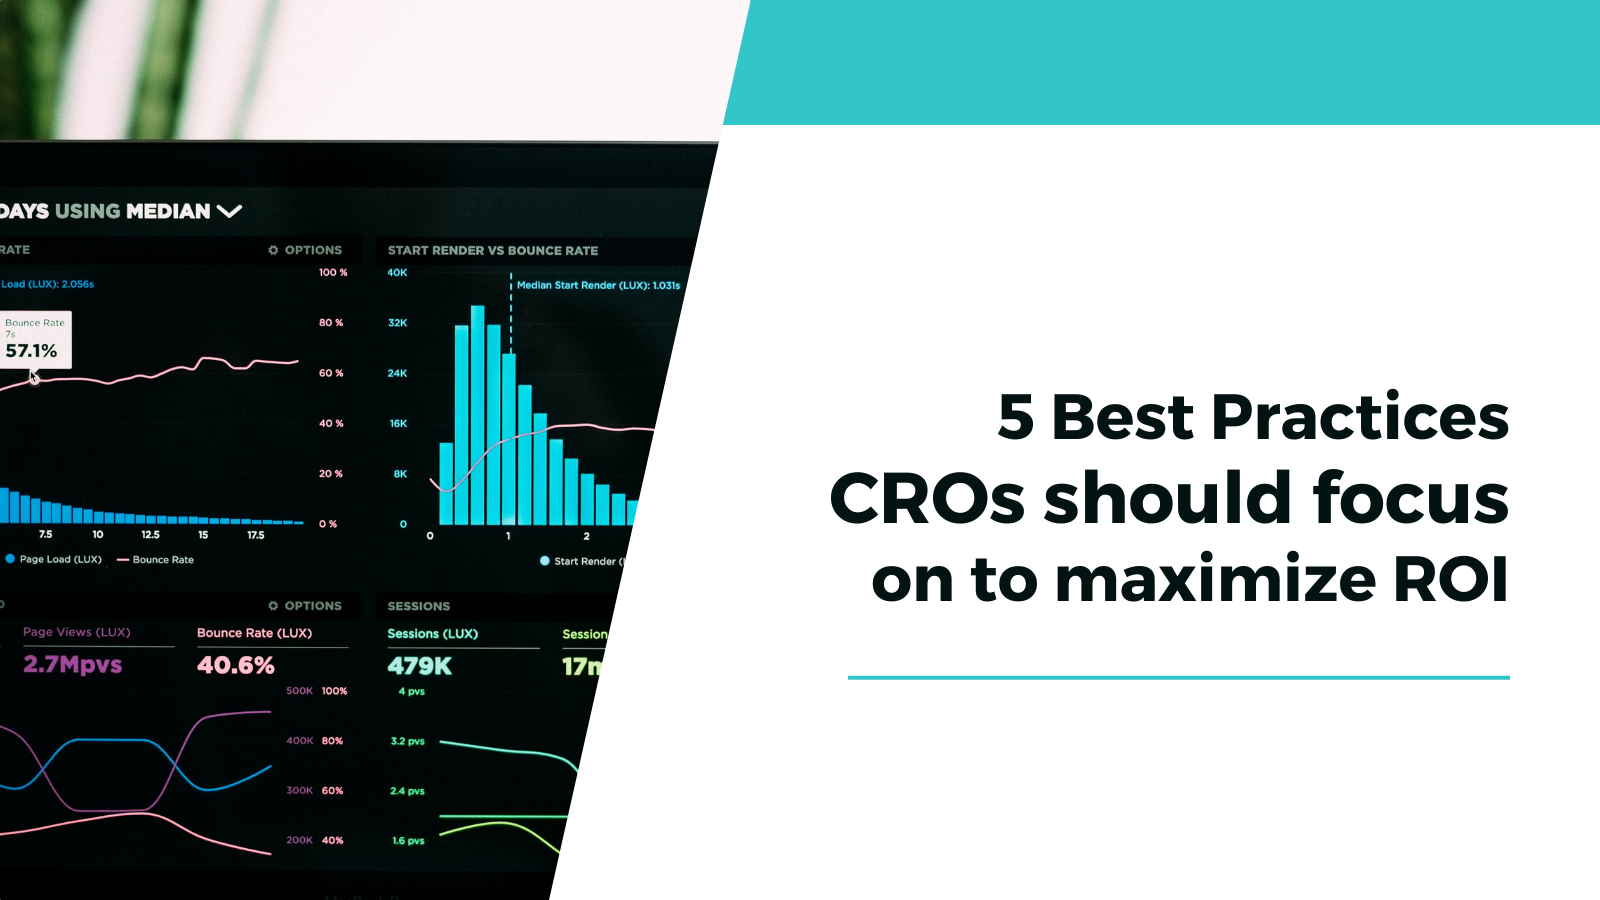 5 Best-Practices CROs should focus on to maximize ROI